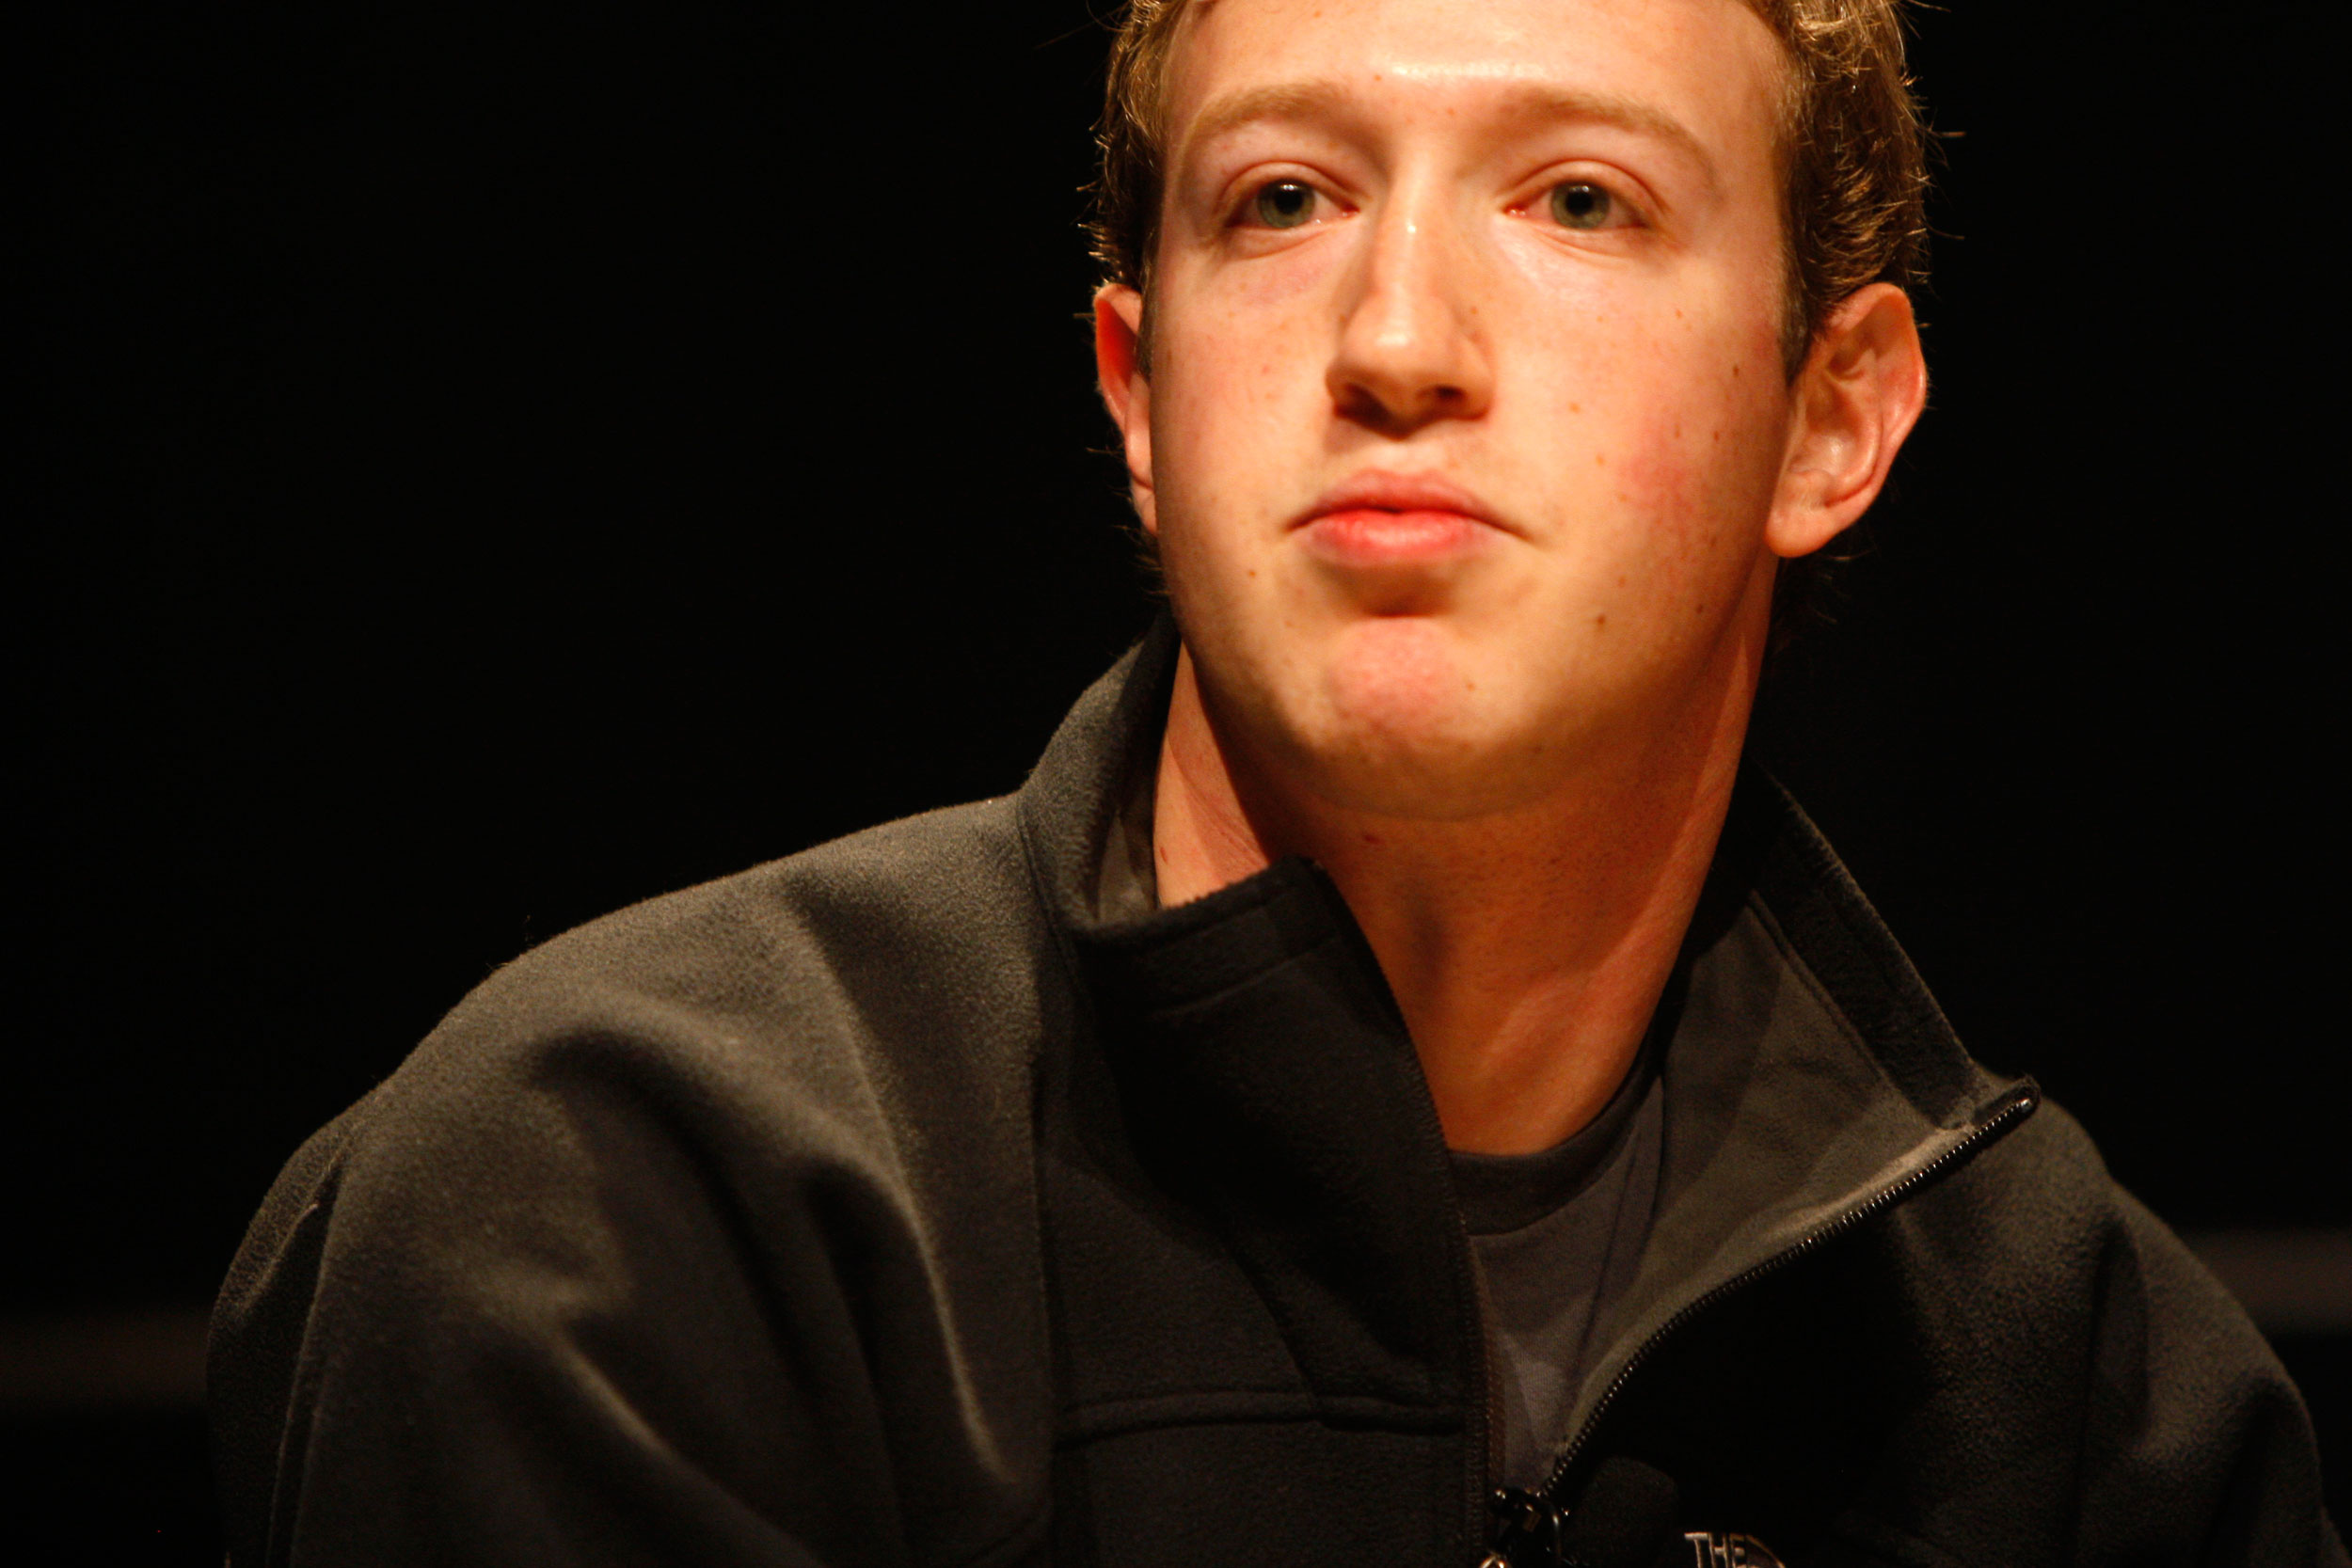 It is time for Zuckerberg to do something to put an end to fake news stories just so news feeds aren't so cluttered. However, I think people can figure out for themselves whether something is legit or not.